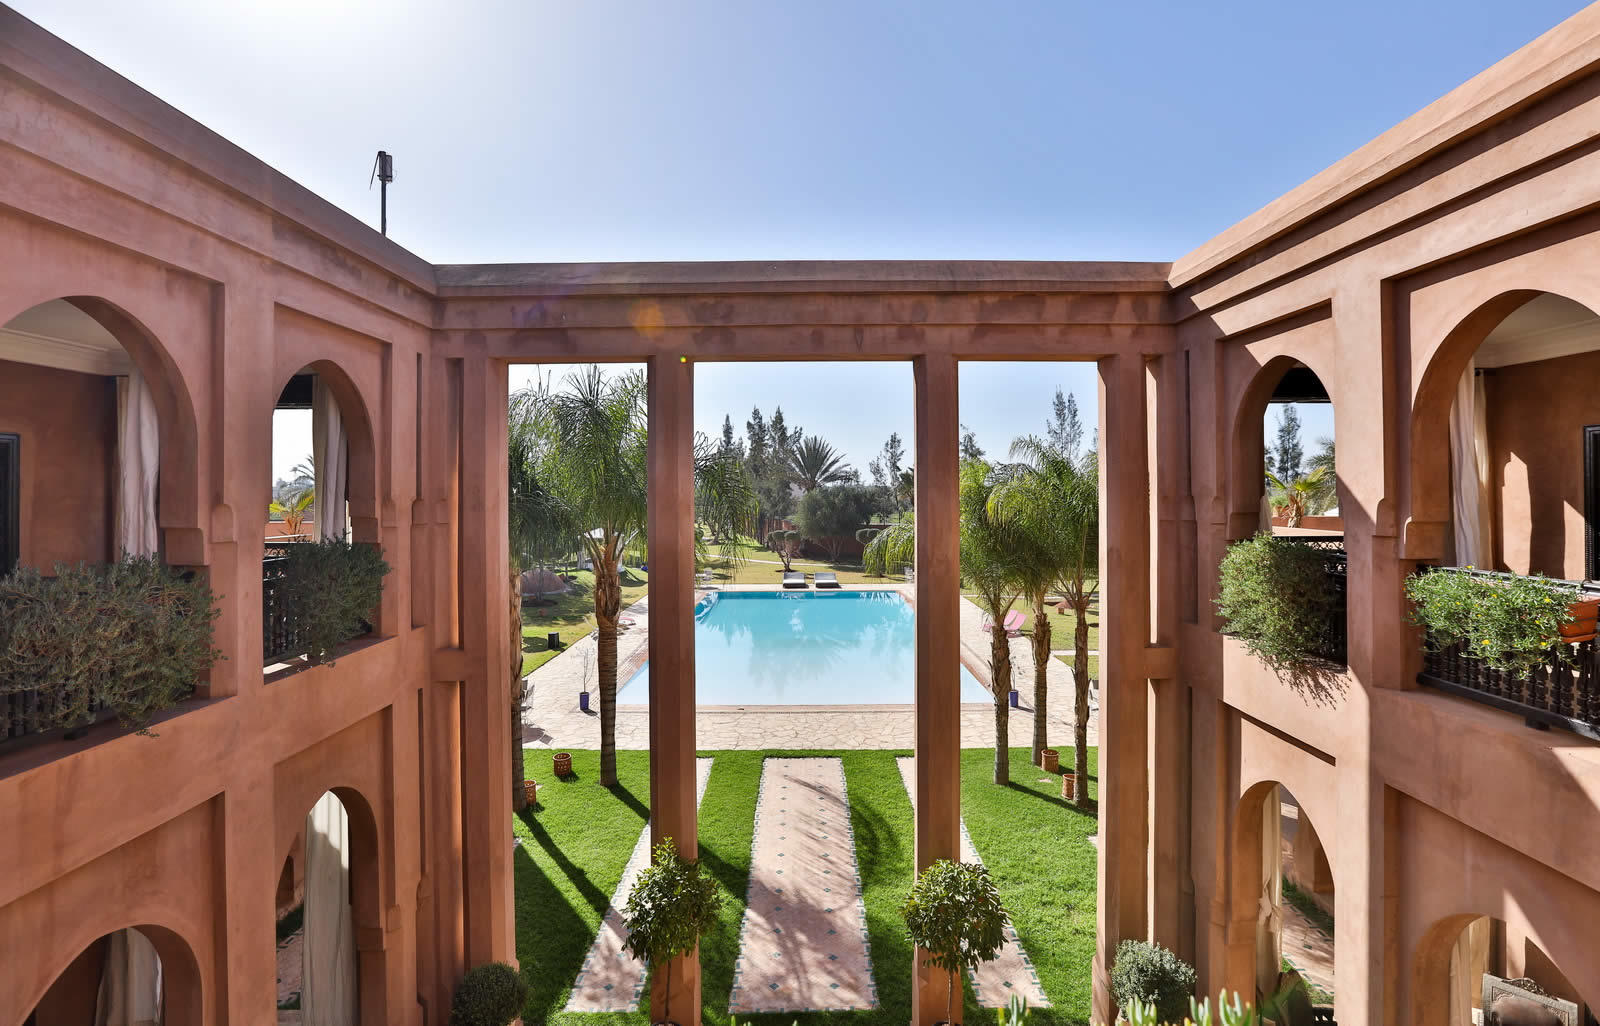 palace-for-sale-pool-spa-jacuzzi-garden-terraces